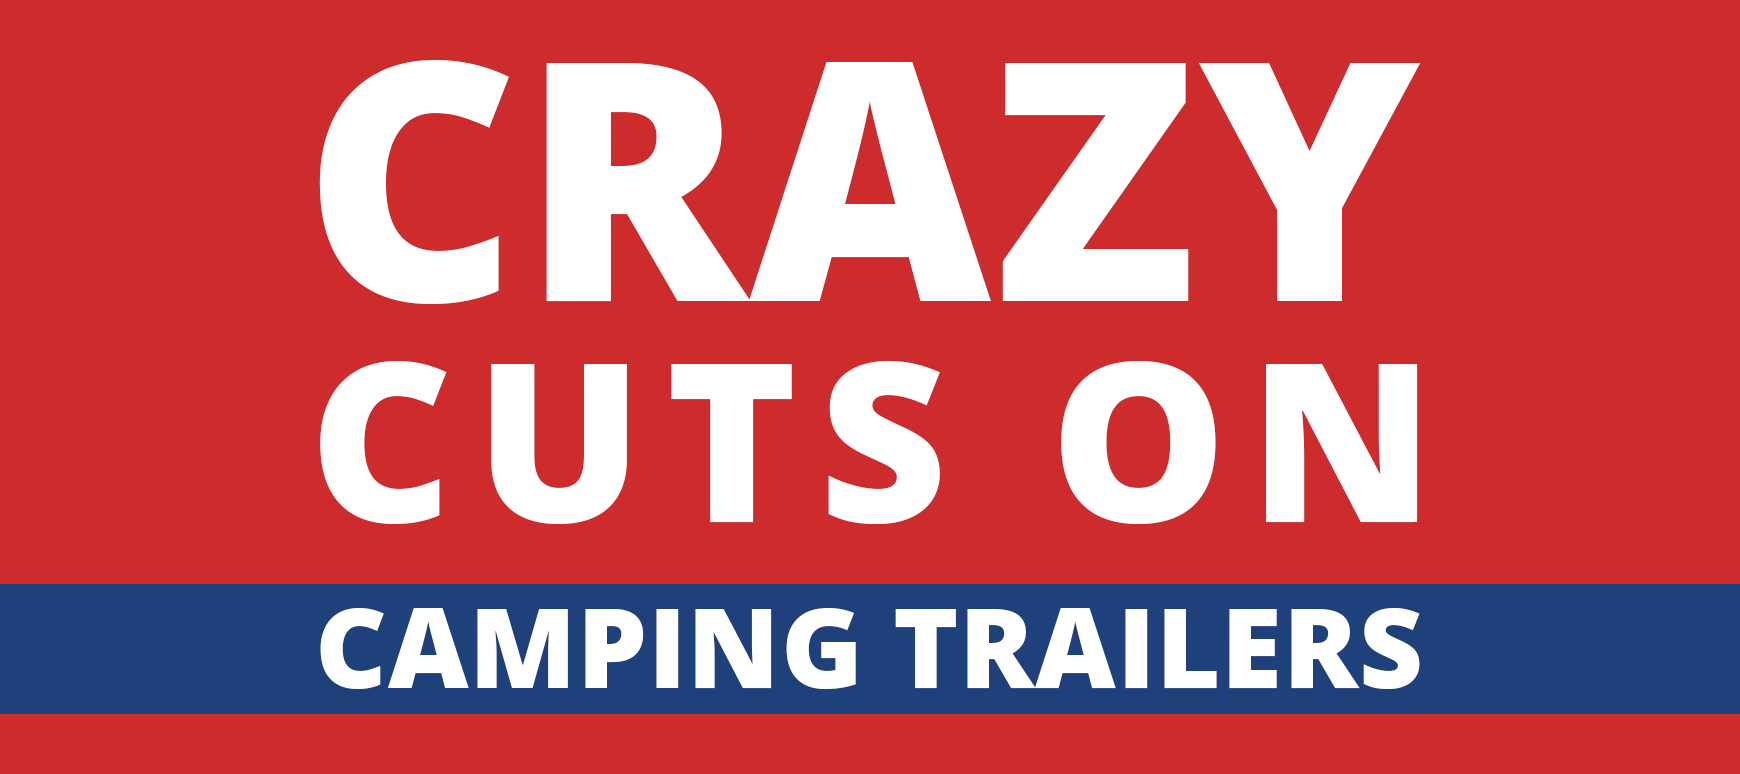 Crazy Cuts on Camping Trailers